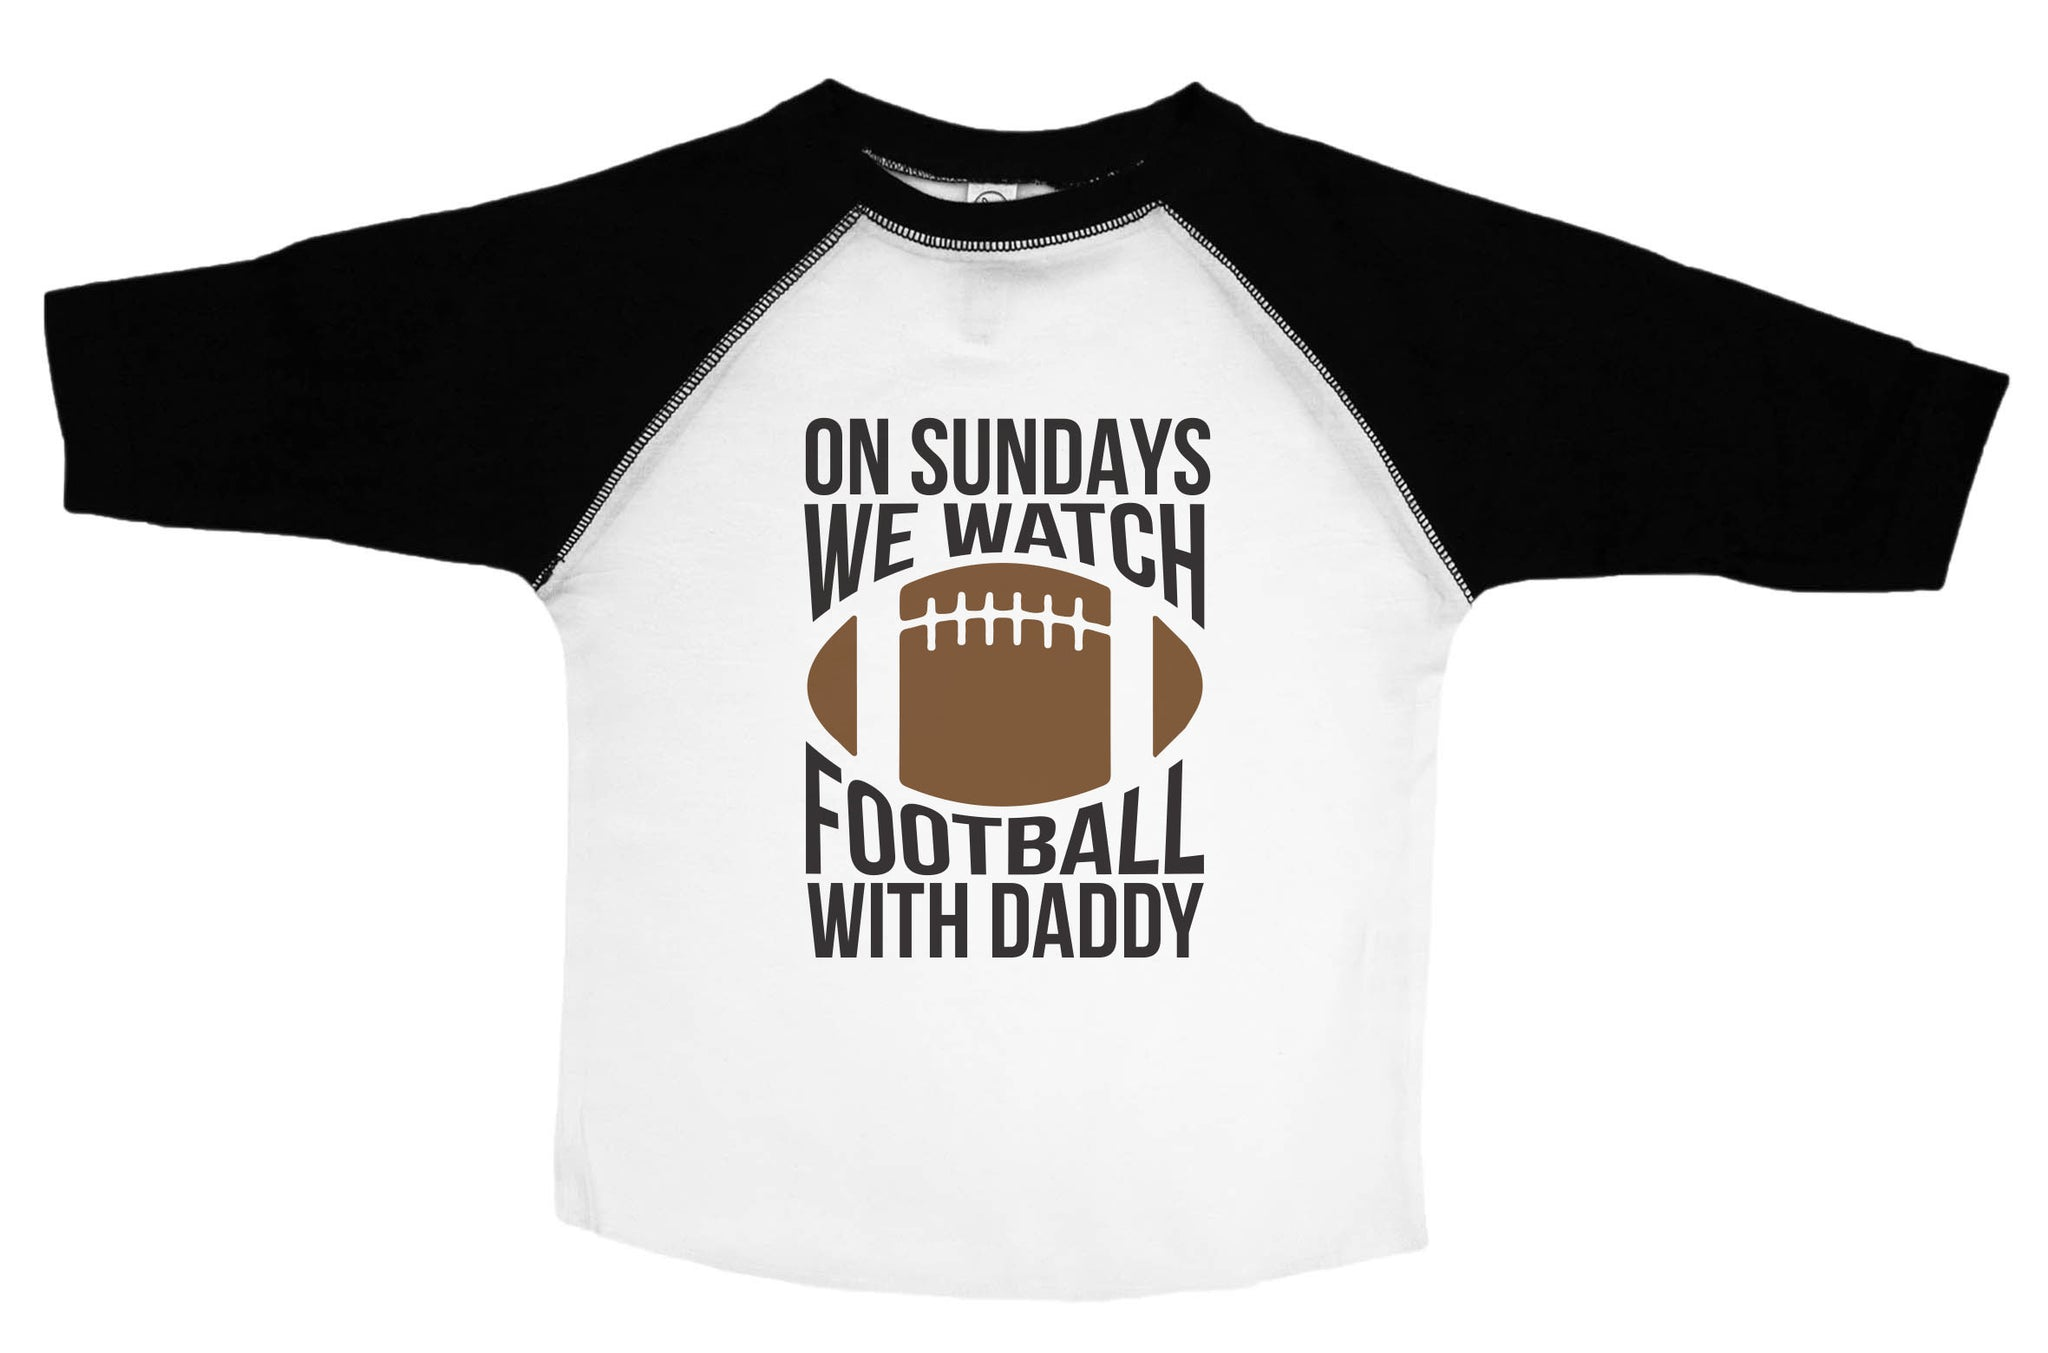 ON SUNDAYS WE WATCH FOOTBALL WITH DADDY / Kids Football Raglan Baseball Shirt